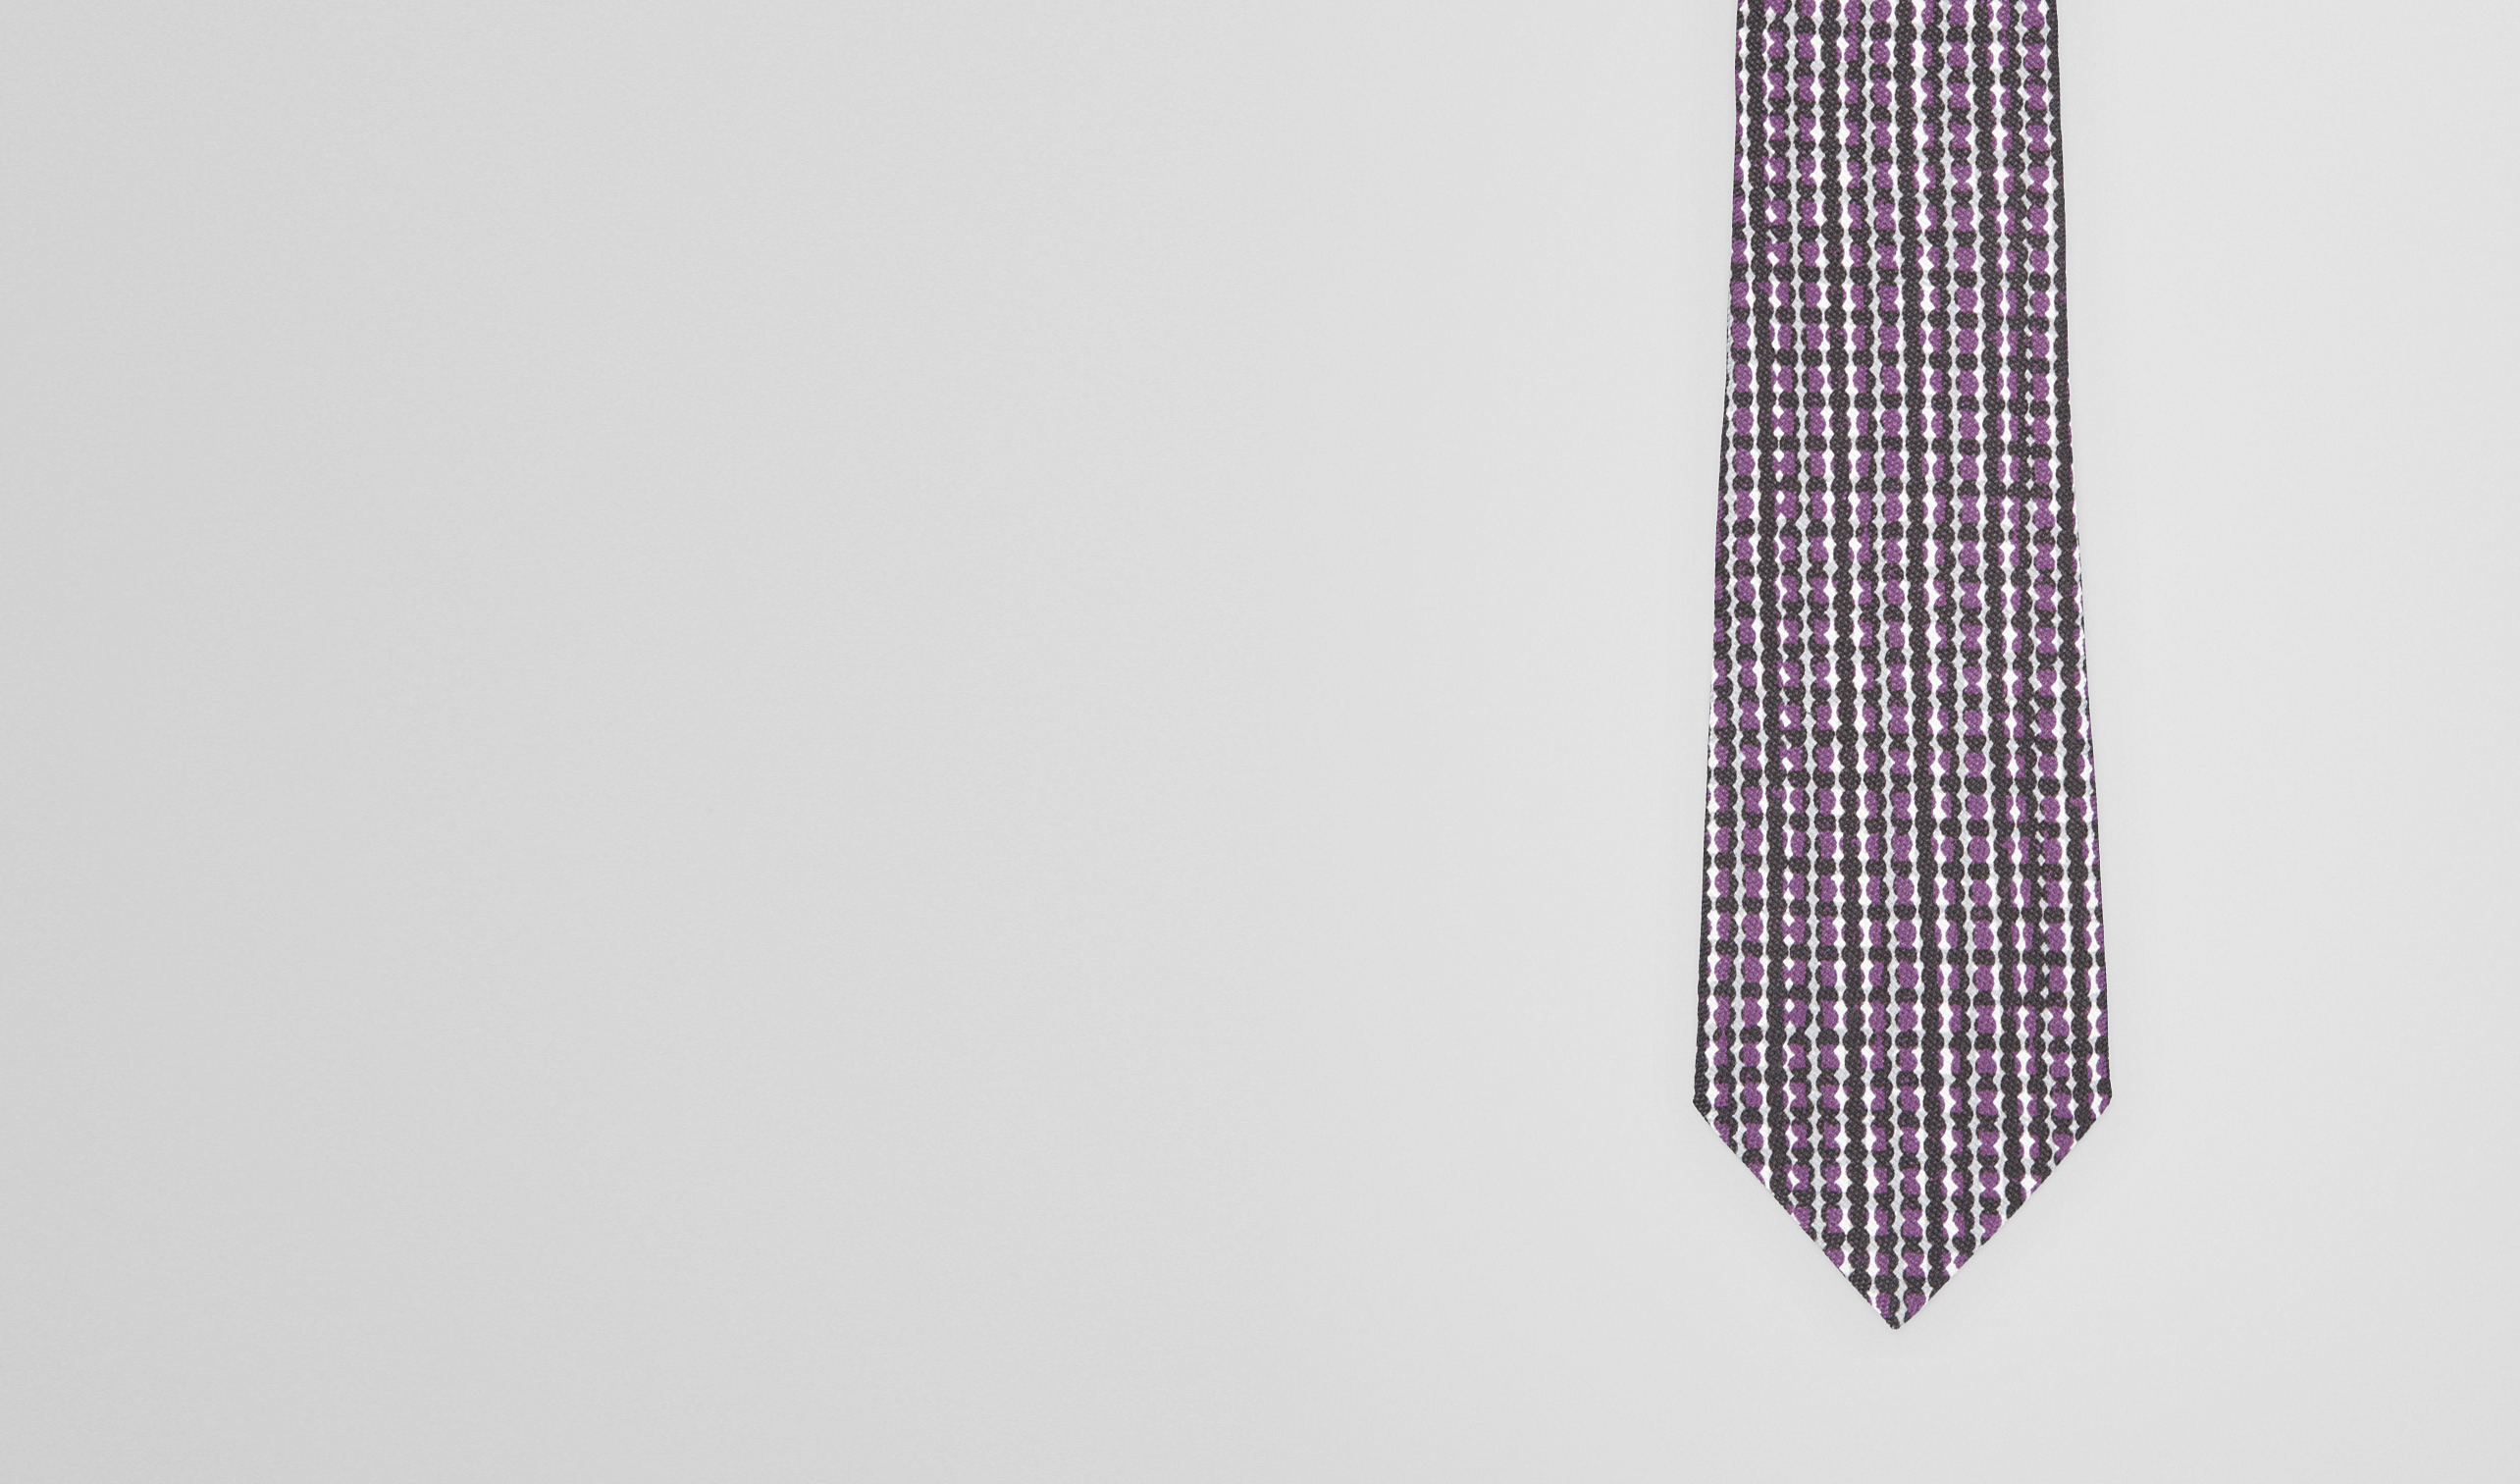 BOTTEGA VENETA Tie U BLACK DARK PURPLE COTTON SILK TIE pl